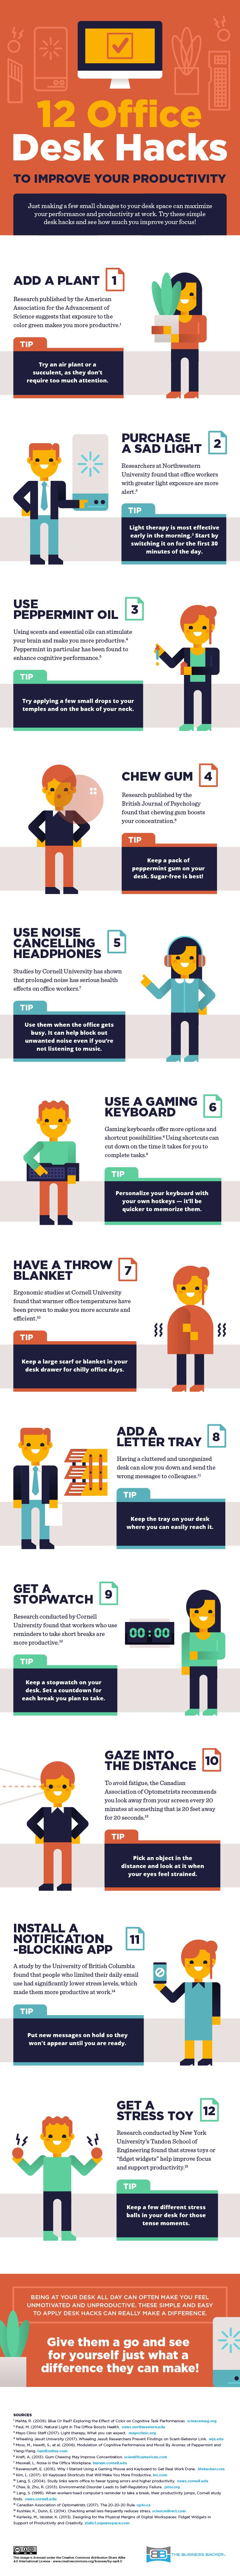 12 Office Desk Hacks to Improve Your Productivity #Infographic #Office